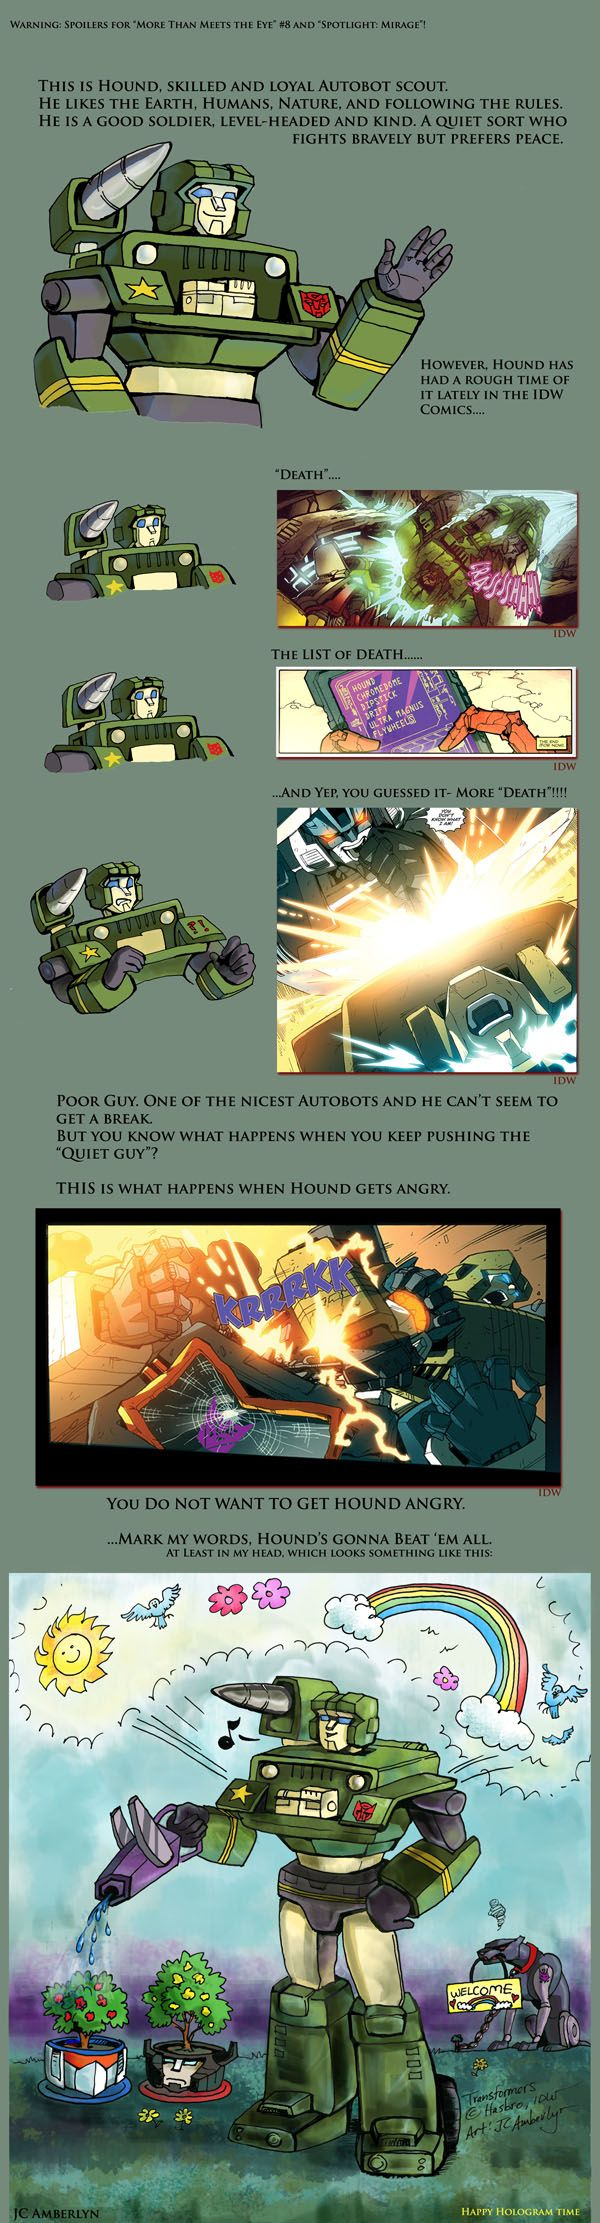 I love Hound so much. One of my favorite mechs. And I sware from here to Cybertron and back if Michel Bay kills him off that guy is in for a world hurt. Maybe I could tell Shockwave that he's free for experementation :D